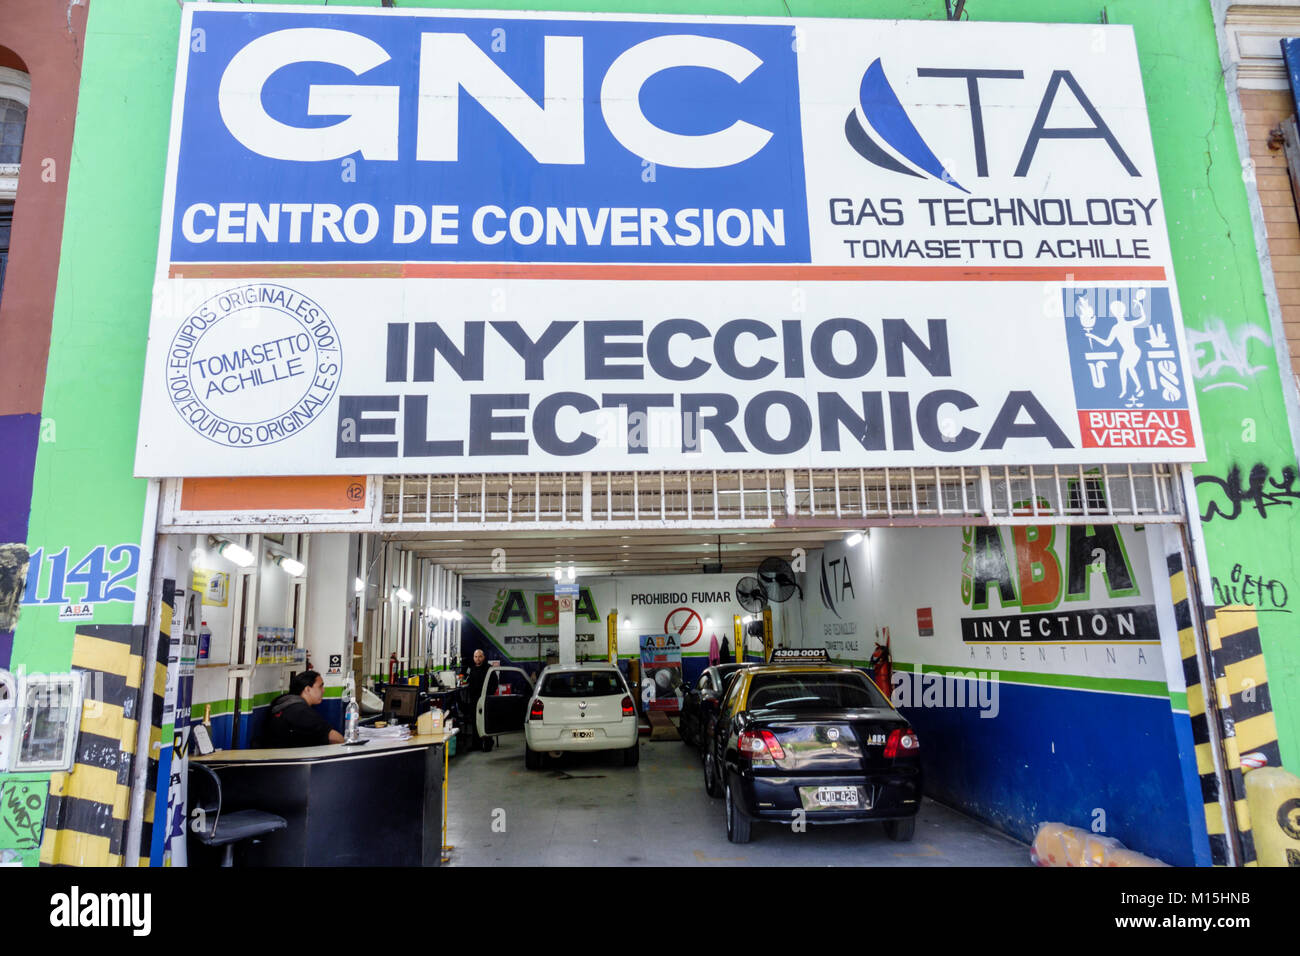 Buenos Aires Argentina San Telmo TA Gas Technology service garage conversion center GNC compressed natural gas GNV - Stock Image